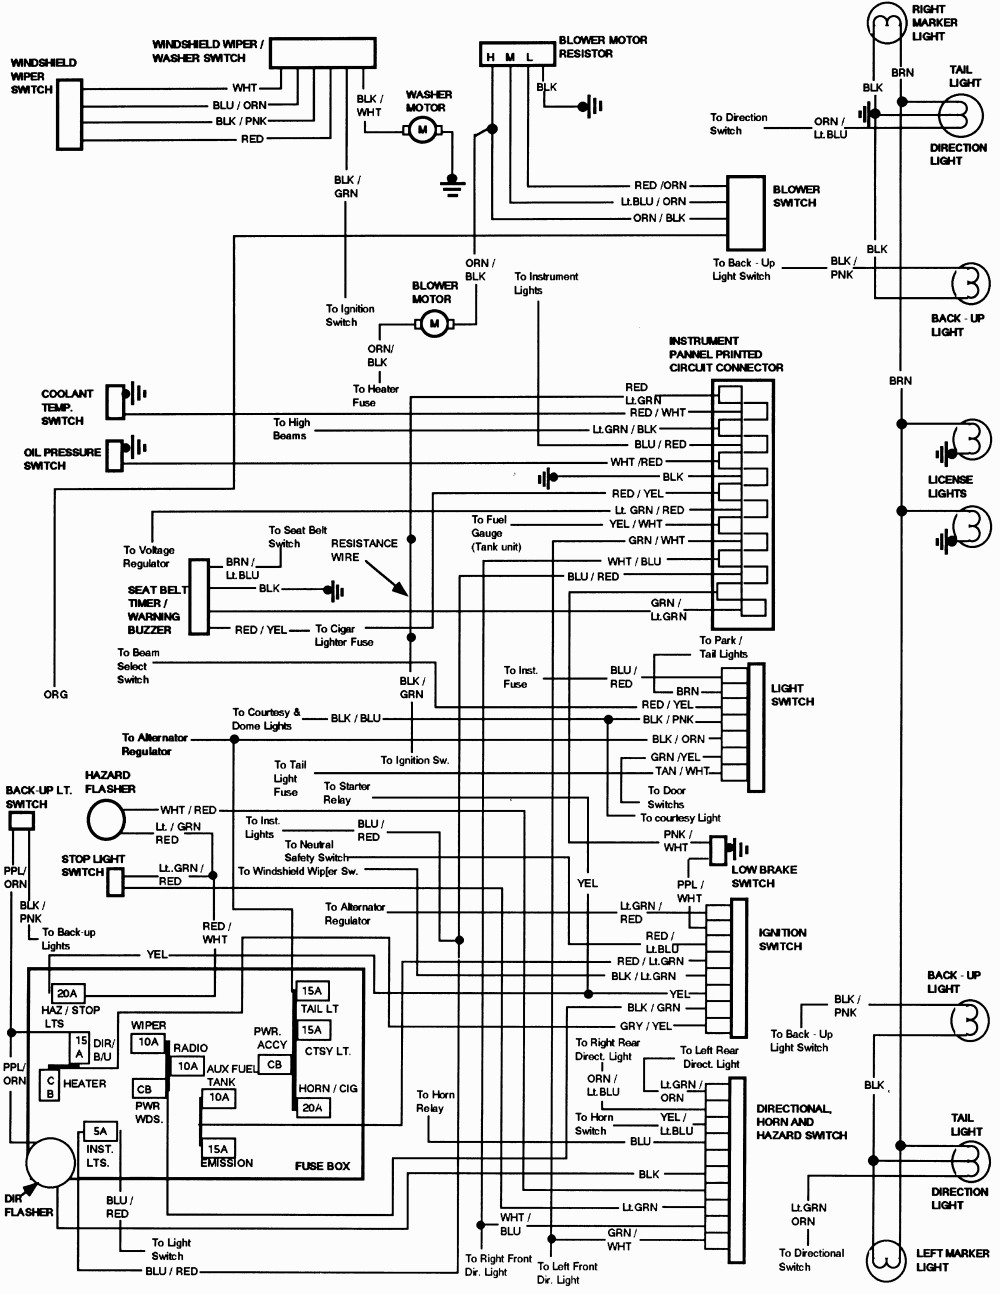 1995 ford f 150 starter wiring diagram 95 ford f150 ignition wiring diagram collection 1995 ford f 150 stereo wiring diagram